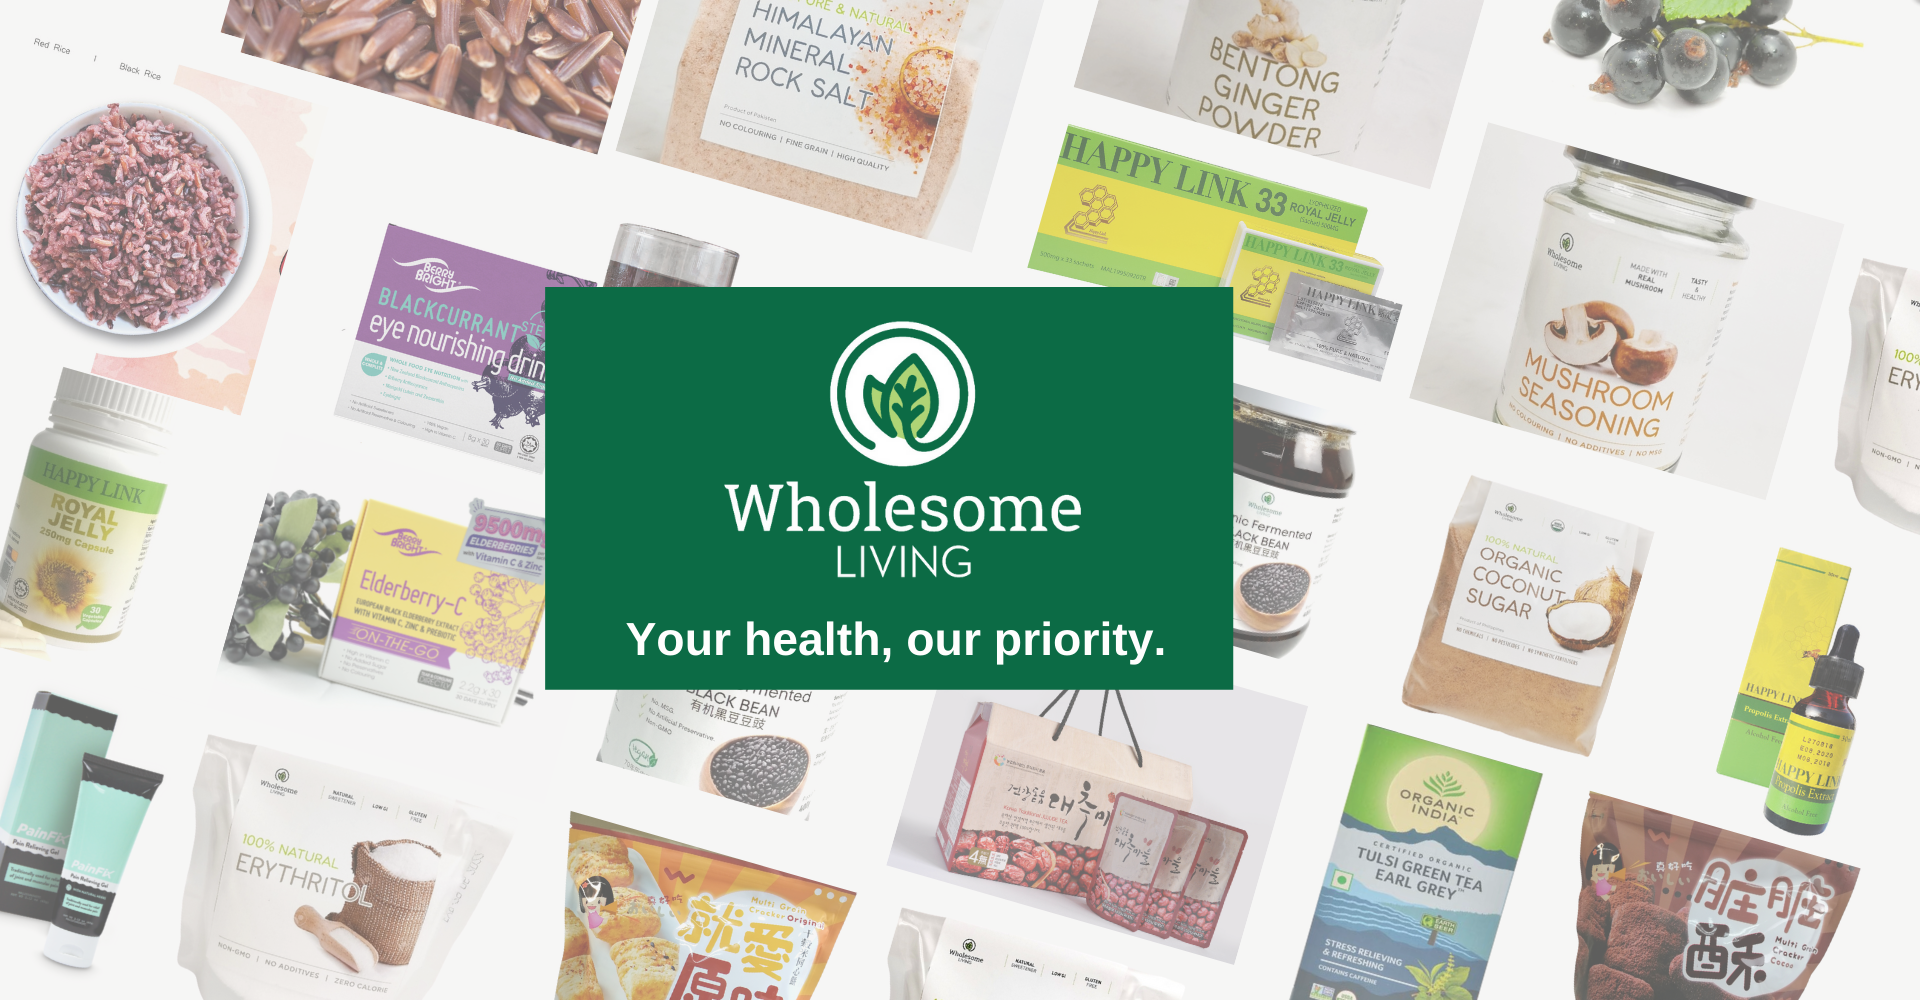 Wholesome Living - From Nature With Care. Your trusted brand for healthy living & health products